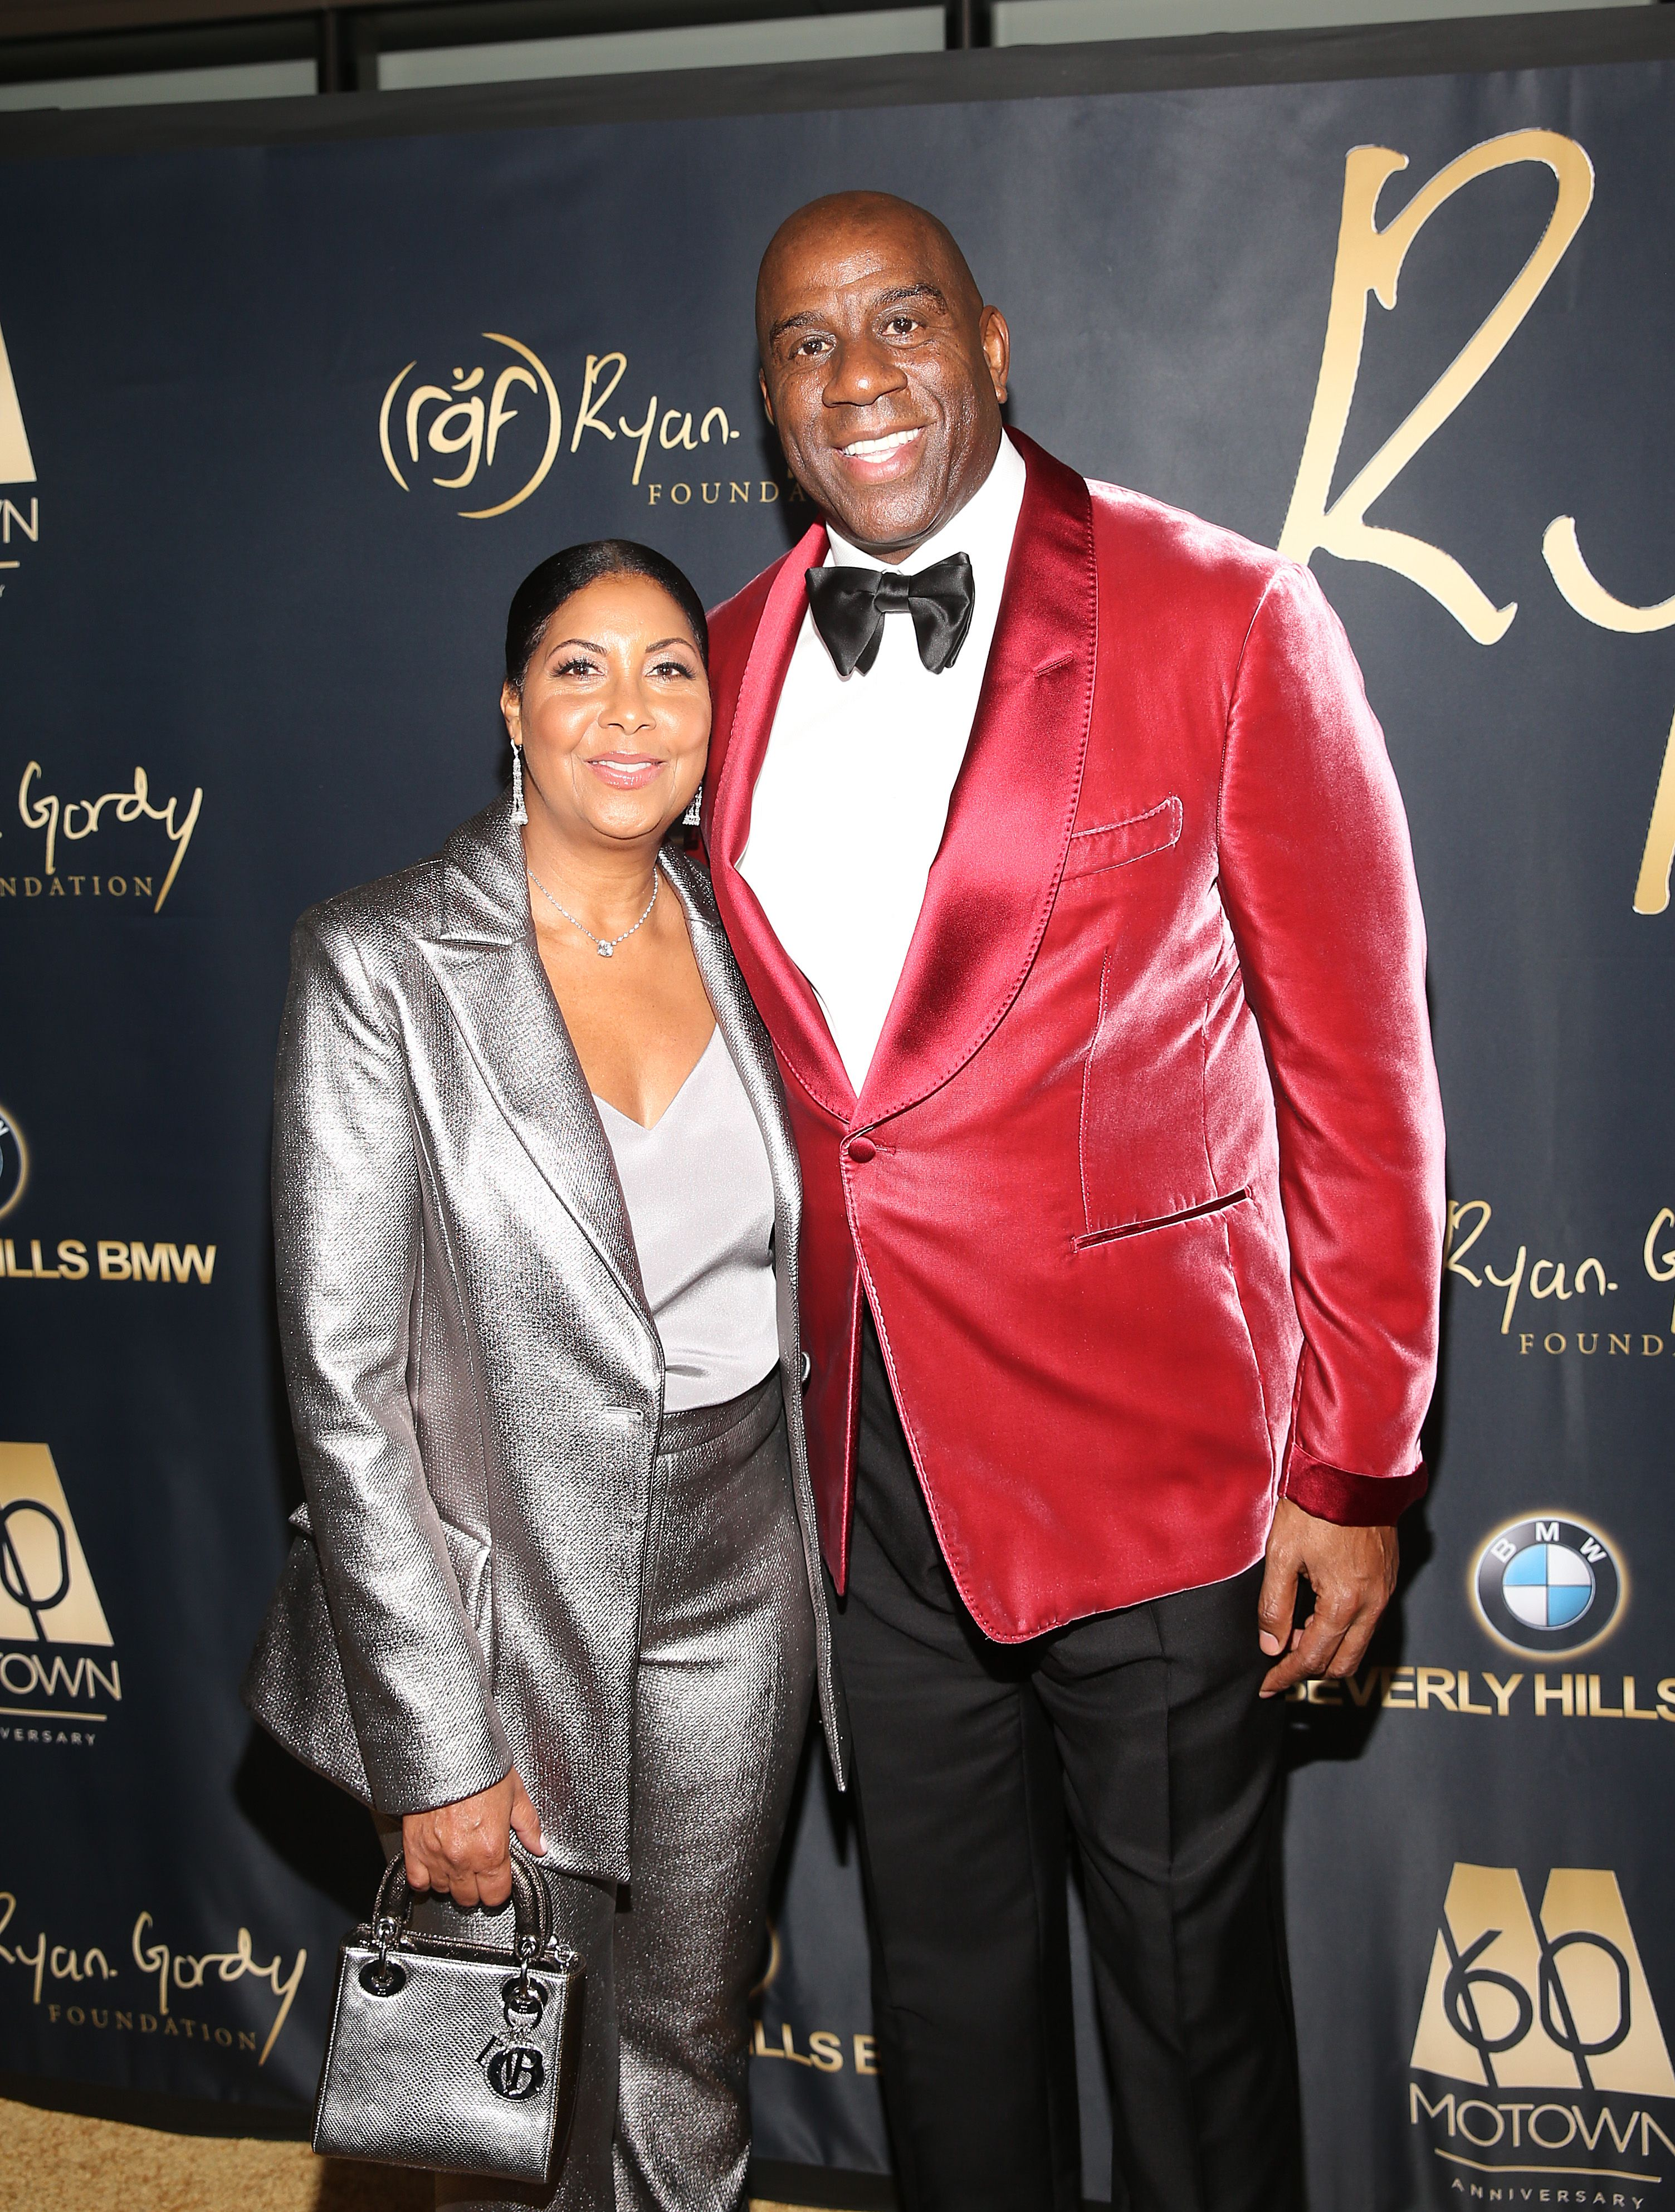 """Cookie Johnson and Earvin """"Magic"""" Johnson at the Ryan Gordy Foundation's """"60 Years of Motown"""" celebration at the Waldorf Astoria Beverly Hills on November 11, 2019. 